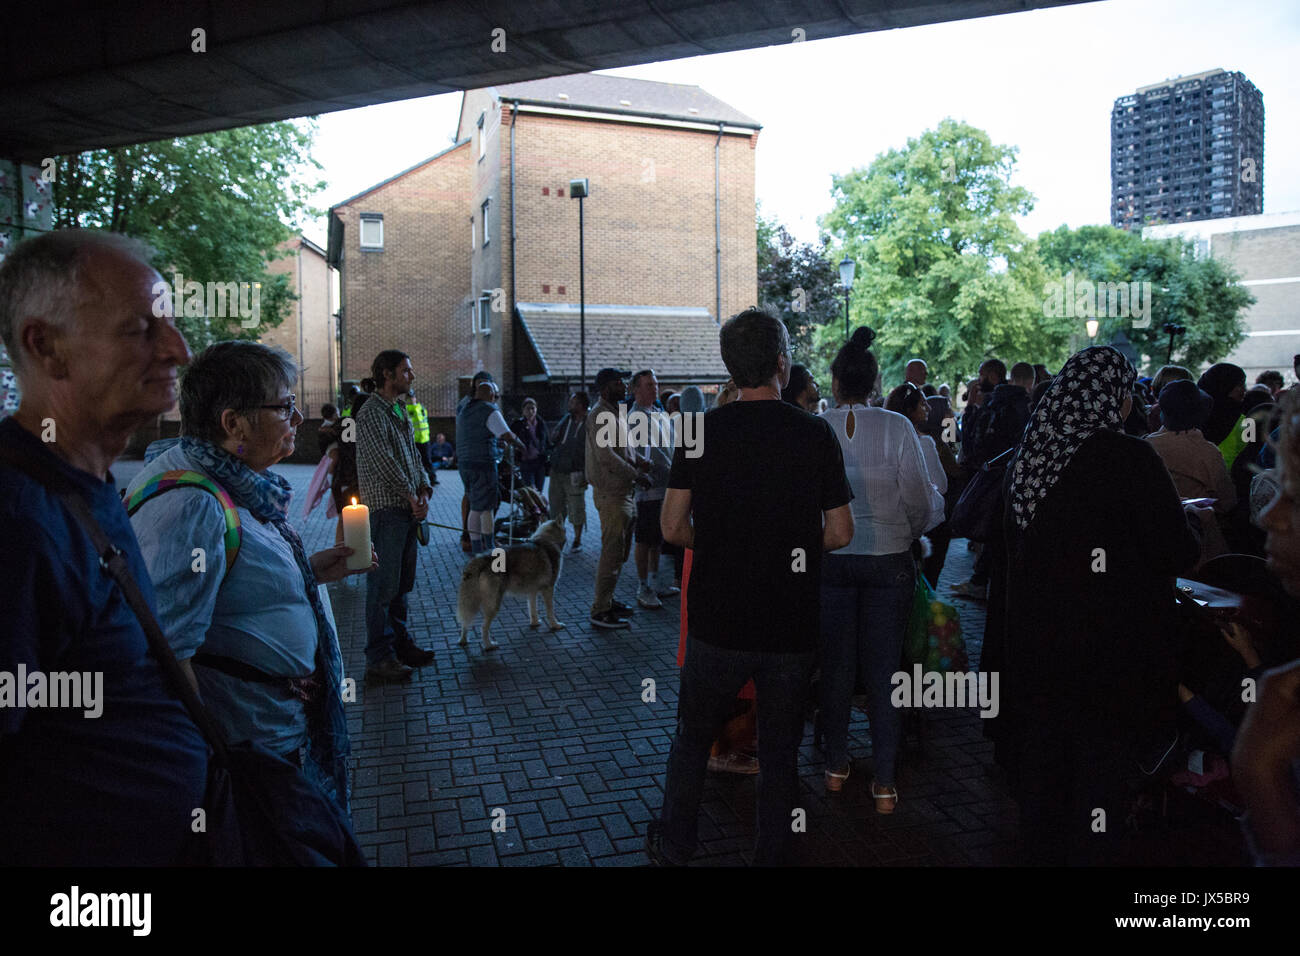 London, UK. 14th August, 2017. Supporters of the Justice for Grenfell campaign hold a rally under the Westway at Stock Photo